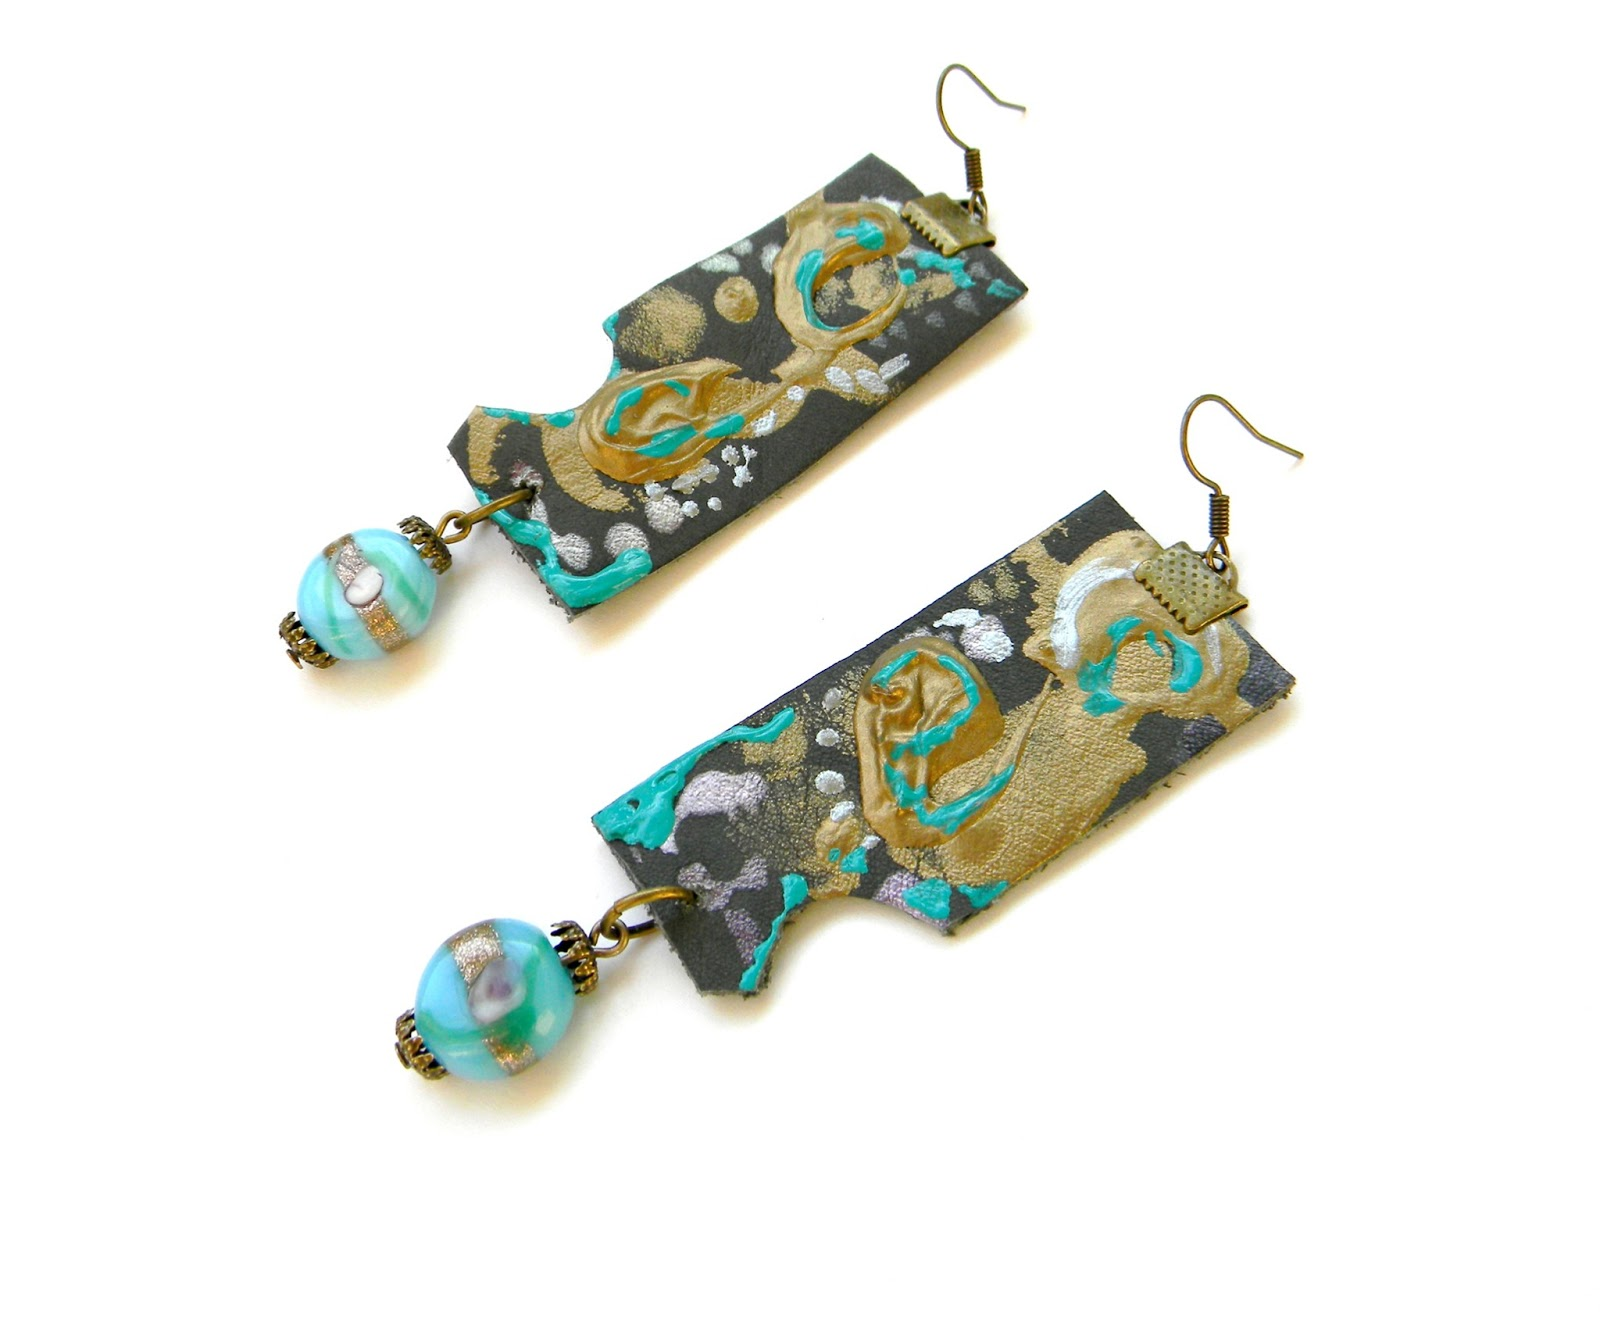 Unique Handmade Jewelry Abstract Earrings Leather Jewelry